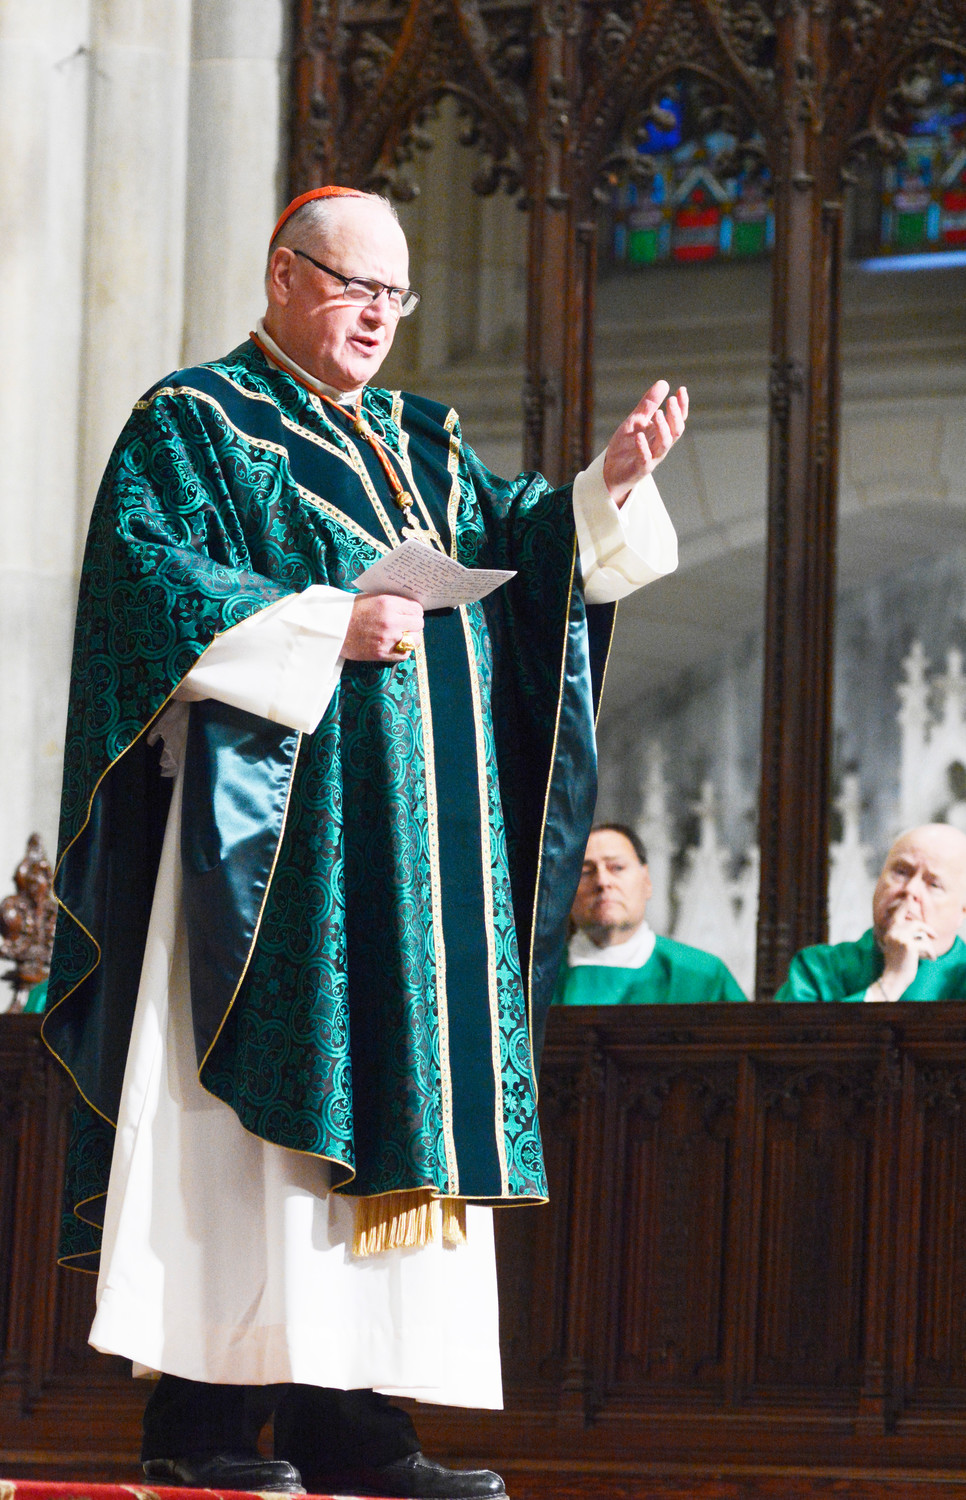 Cardinal Dolan comforts the congregation during the Nov. 5 Mass he offered at St. Patrick's Cathedral for victims of the Oct. 31 terrorist attack on a Lower Manhattan bike path.